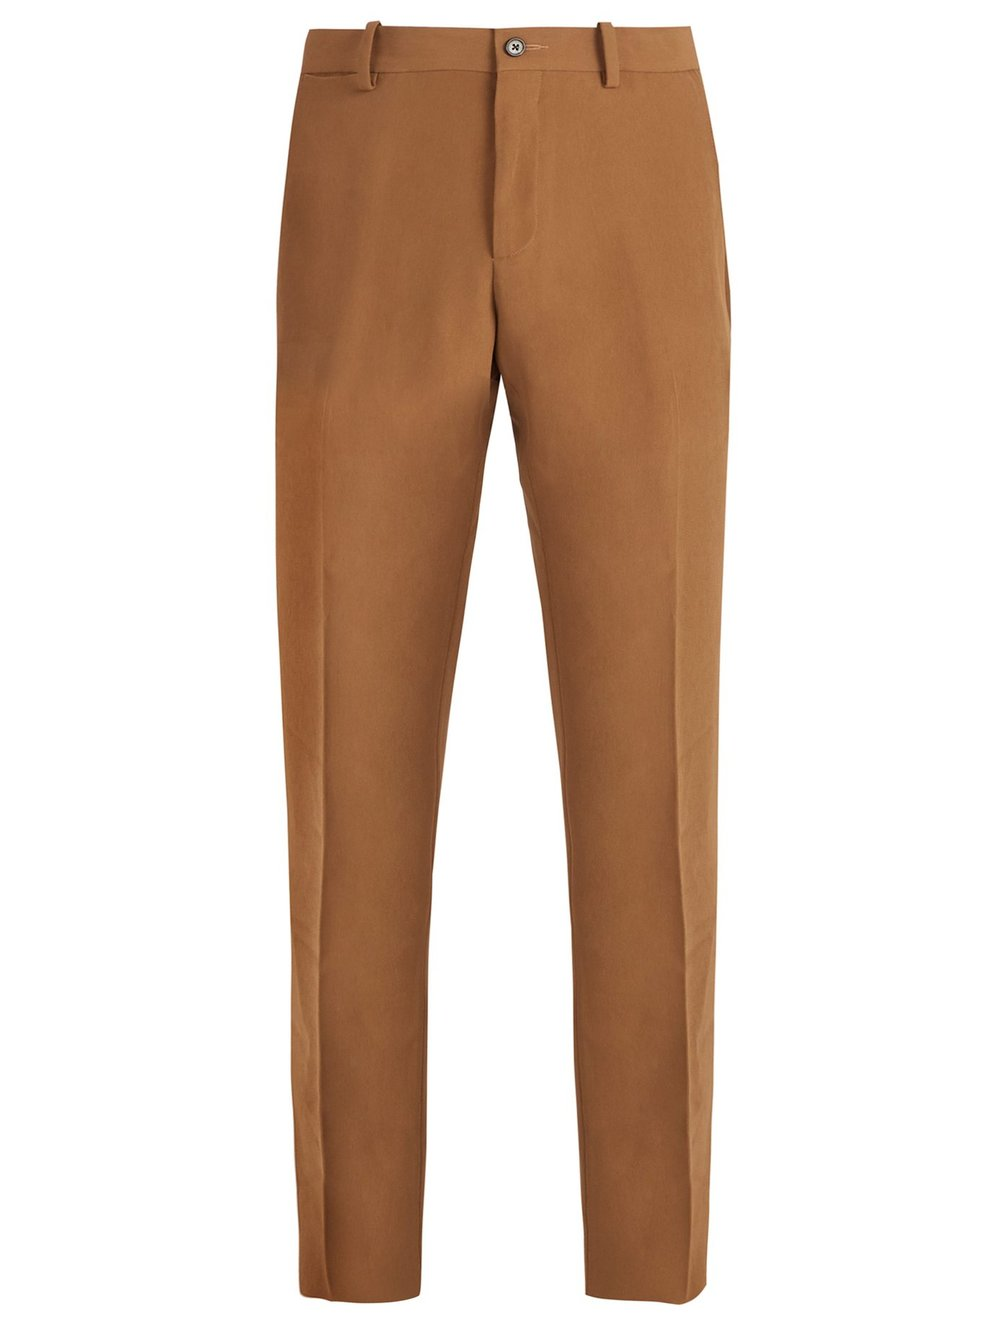 Connolly trousers at Matches Fashion - £550